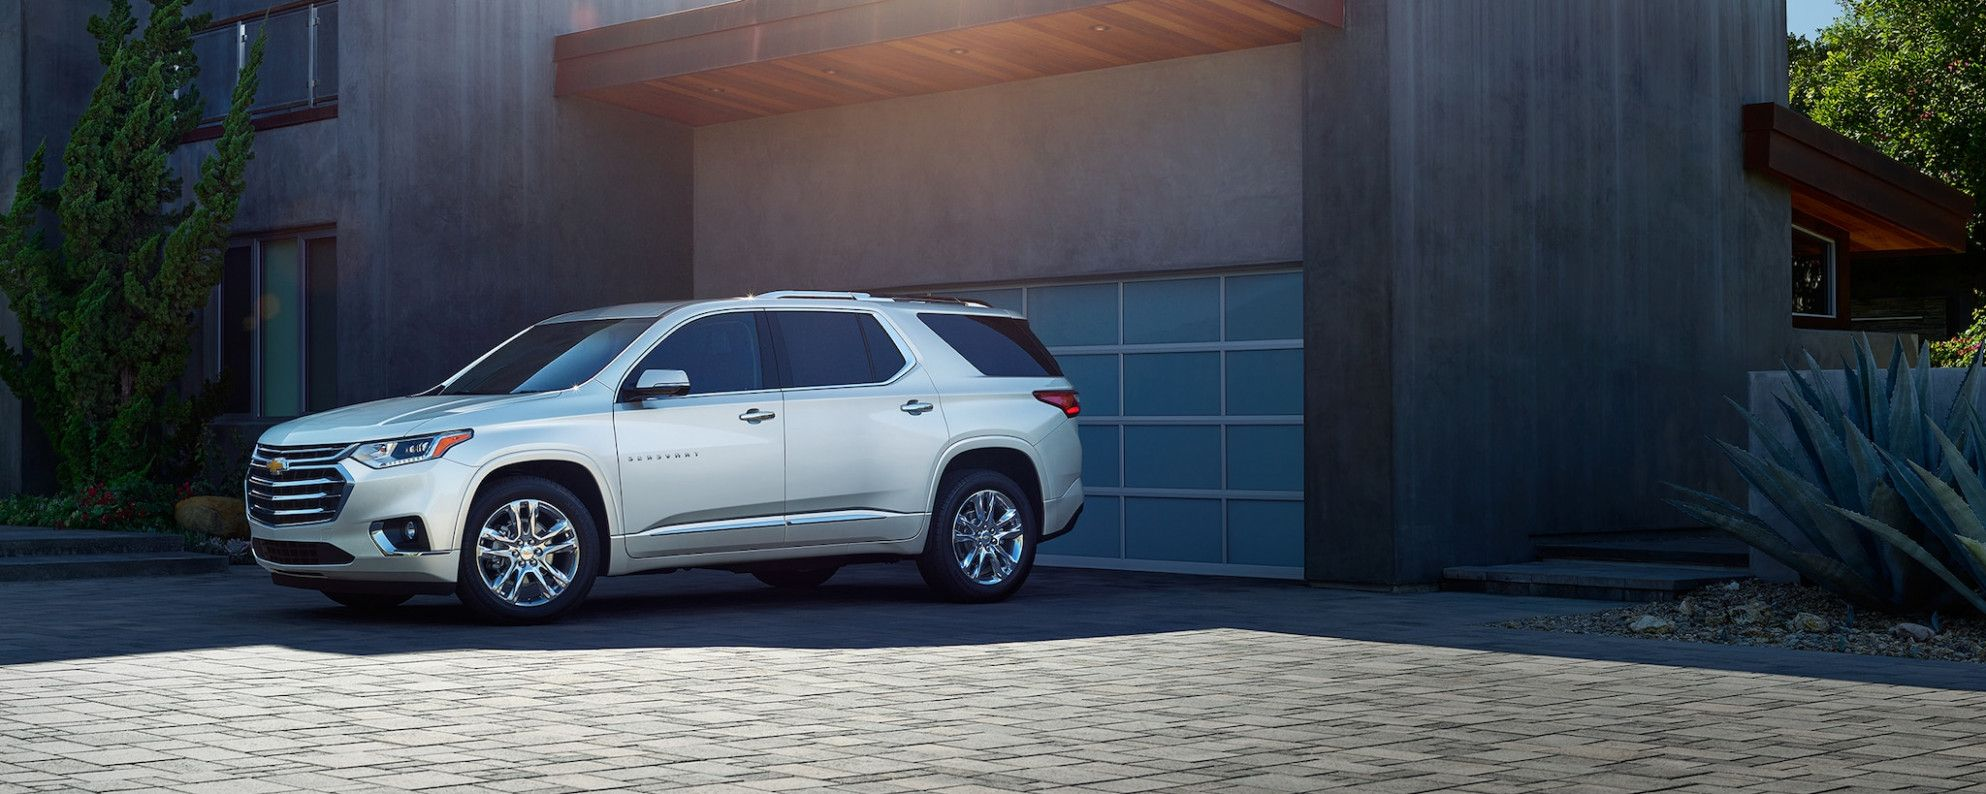 This Story Behind Chevrolet Traverse 2020 Price Will Haunt You Forever Chevrolet Traverse Chevrolet Mid Size Suv